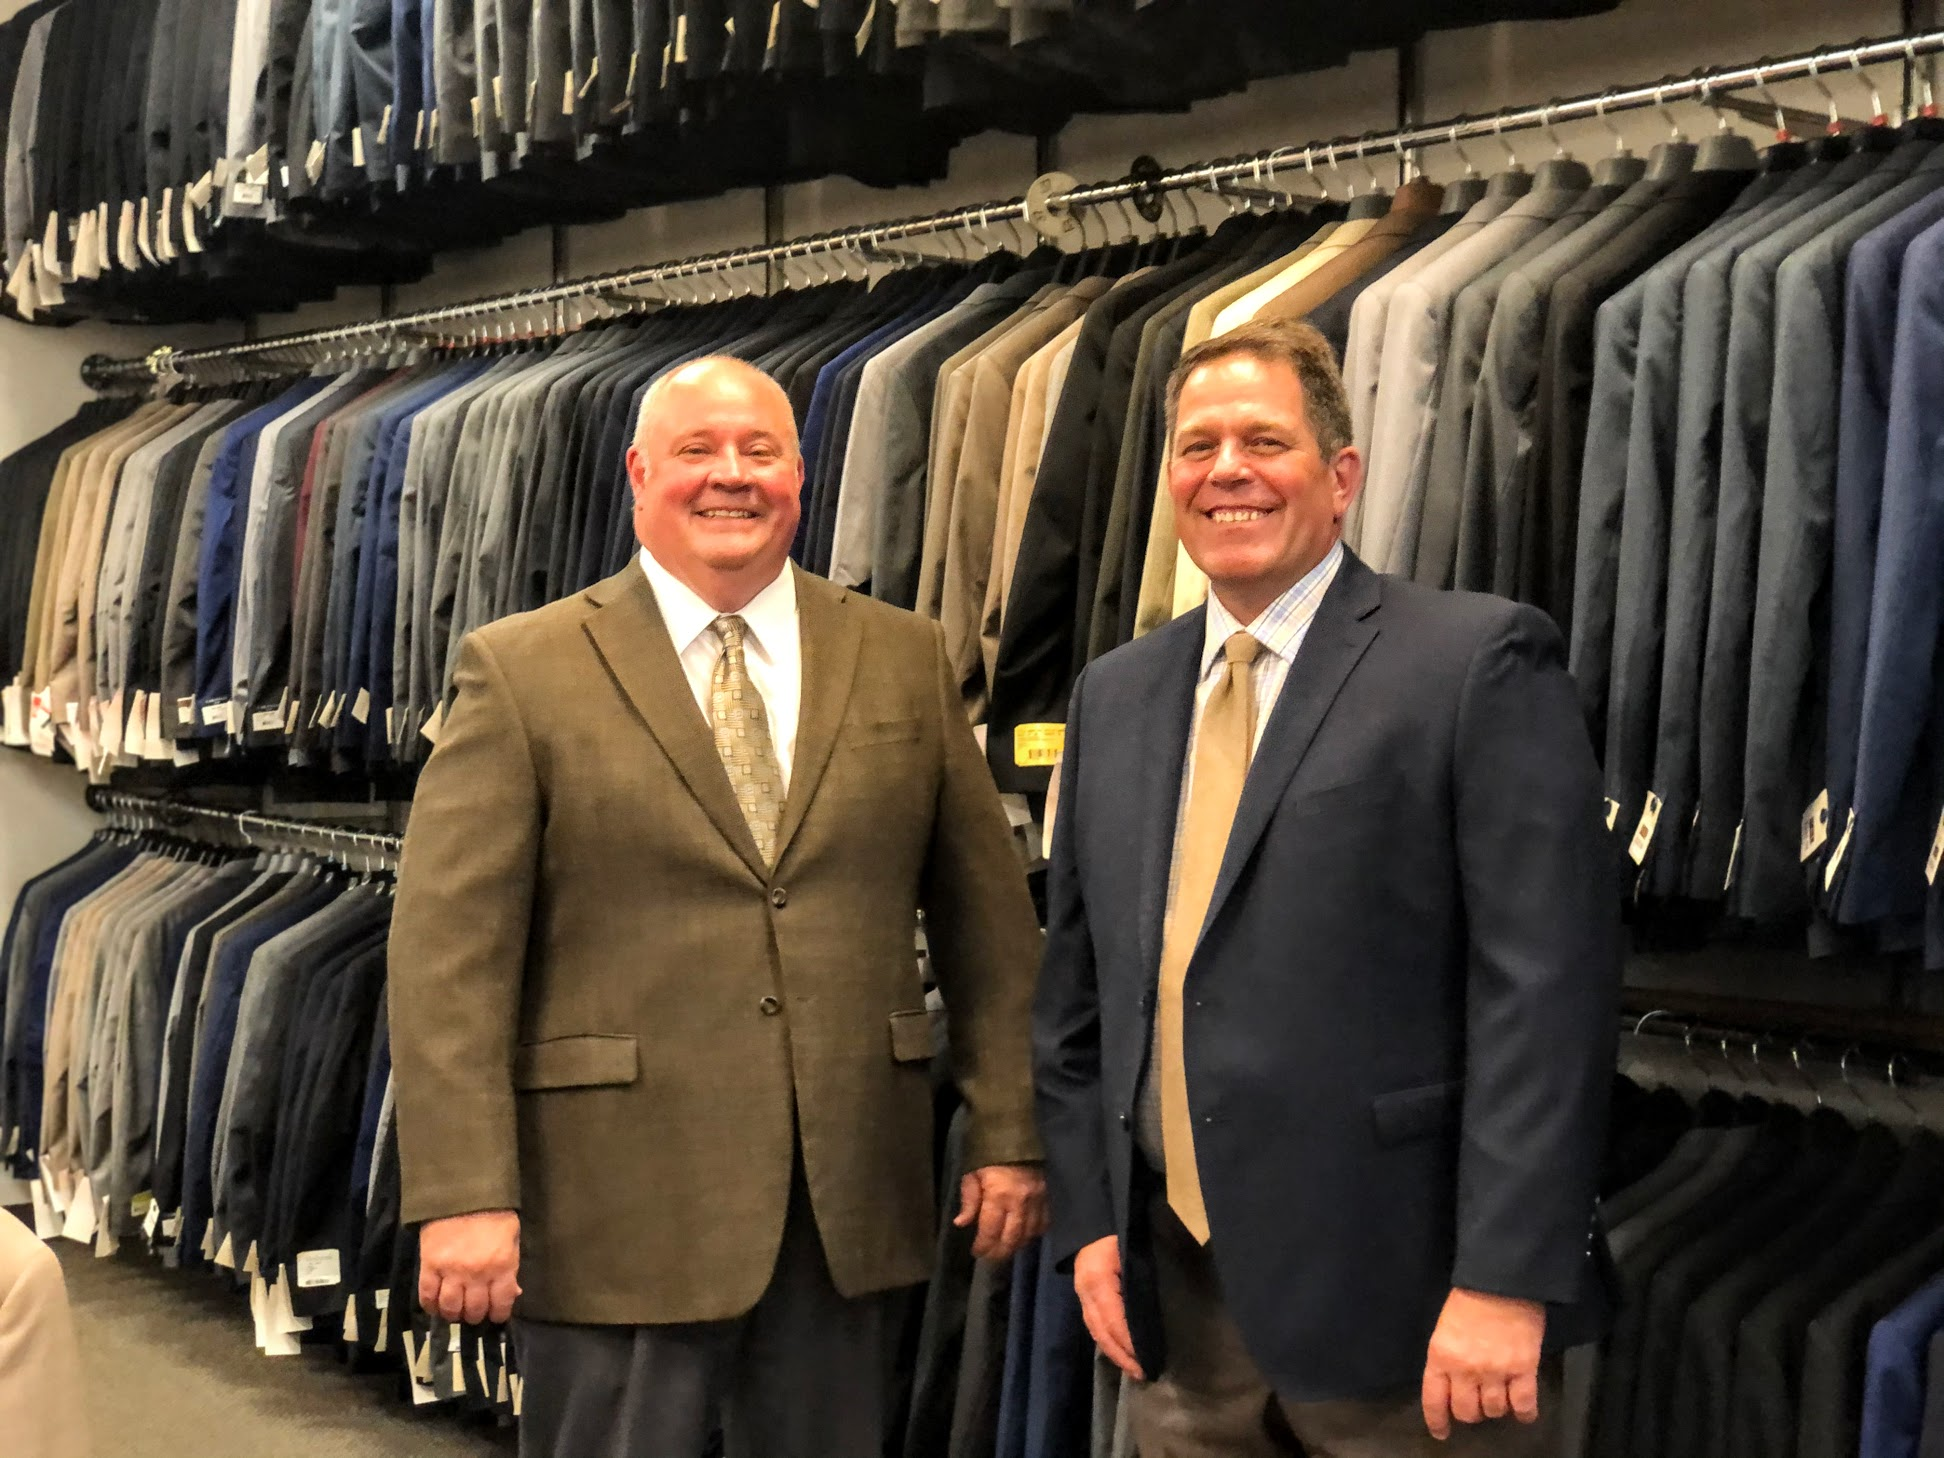 Spencer, left, and Stuart Christensen are pictured at the Mr. Mac flagship store in City Creek Center.